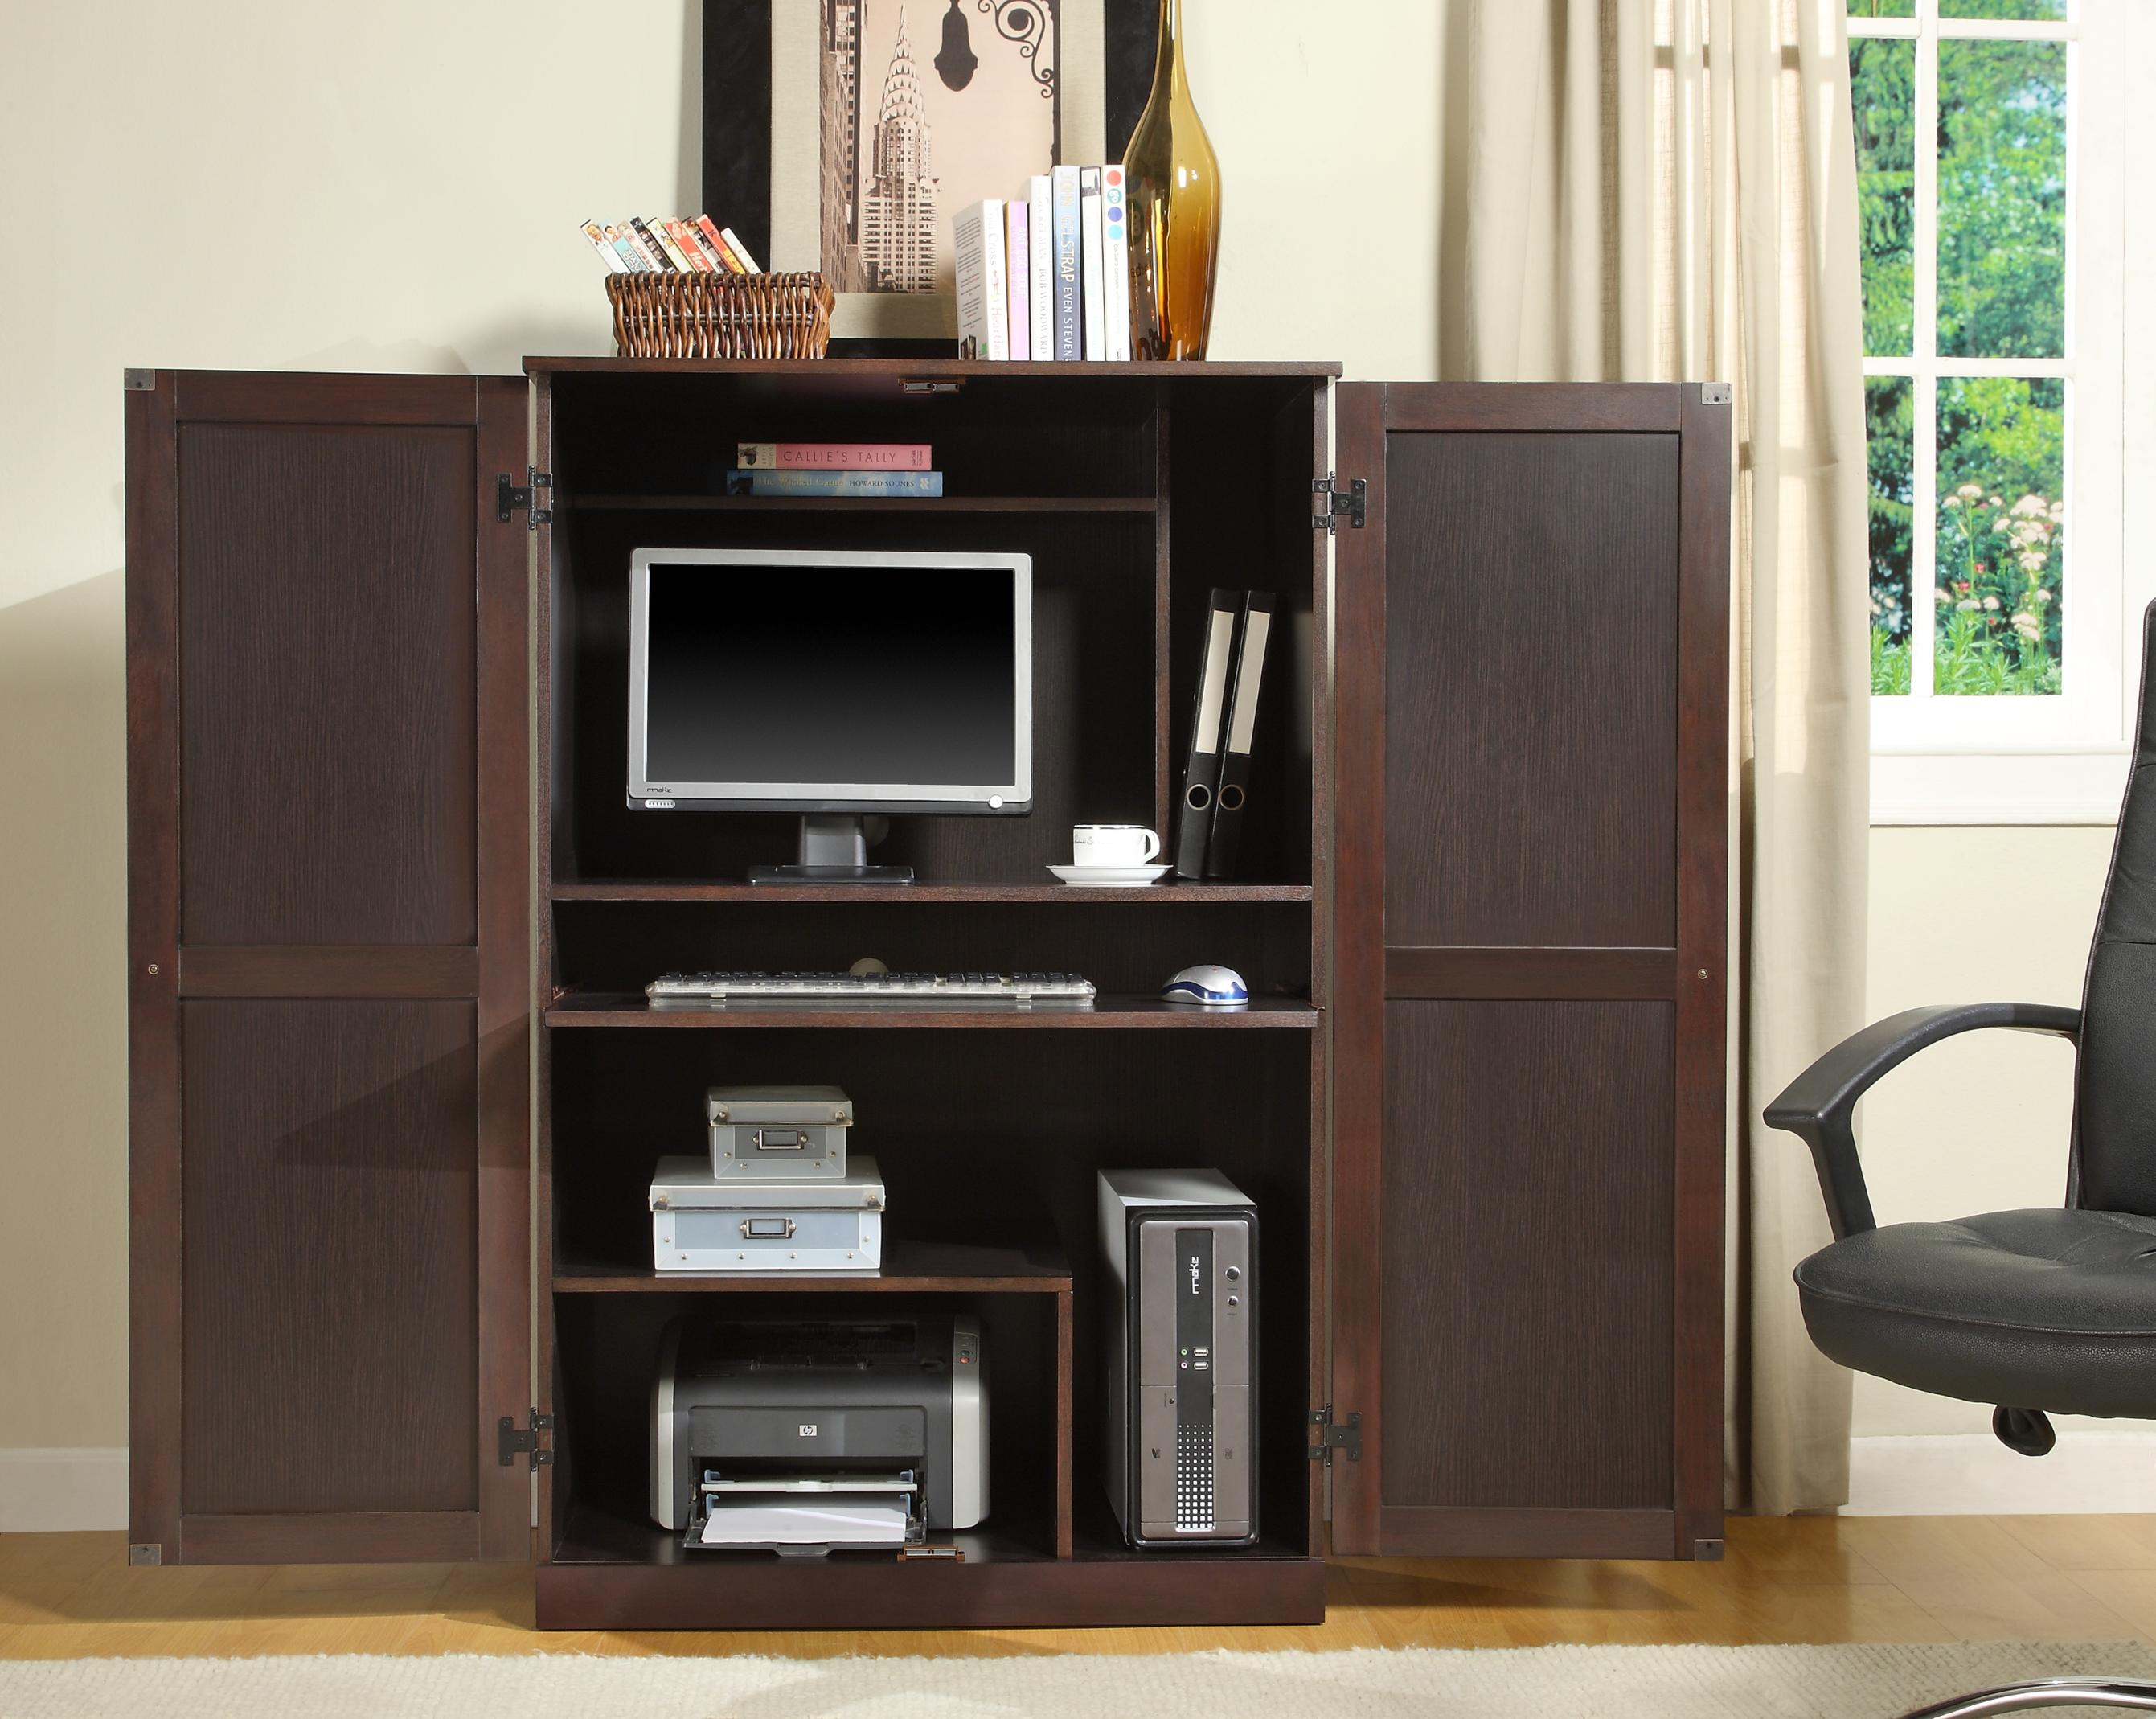 Computer Armoire with book above and wooden floor for your Interior Design ideas